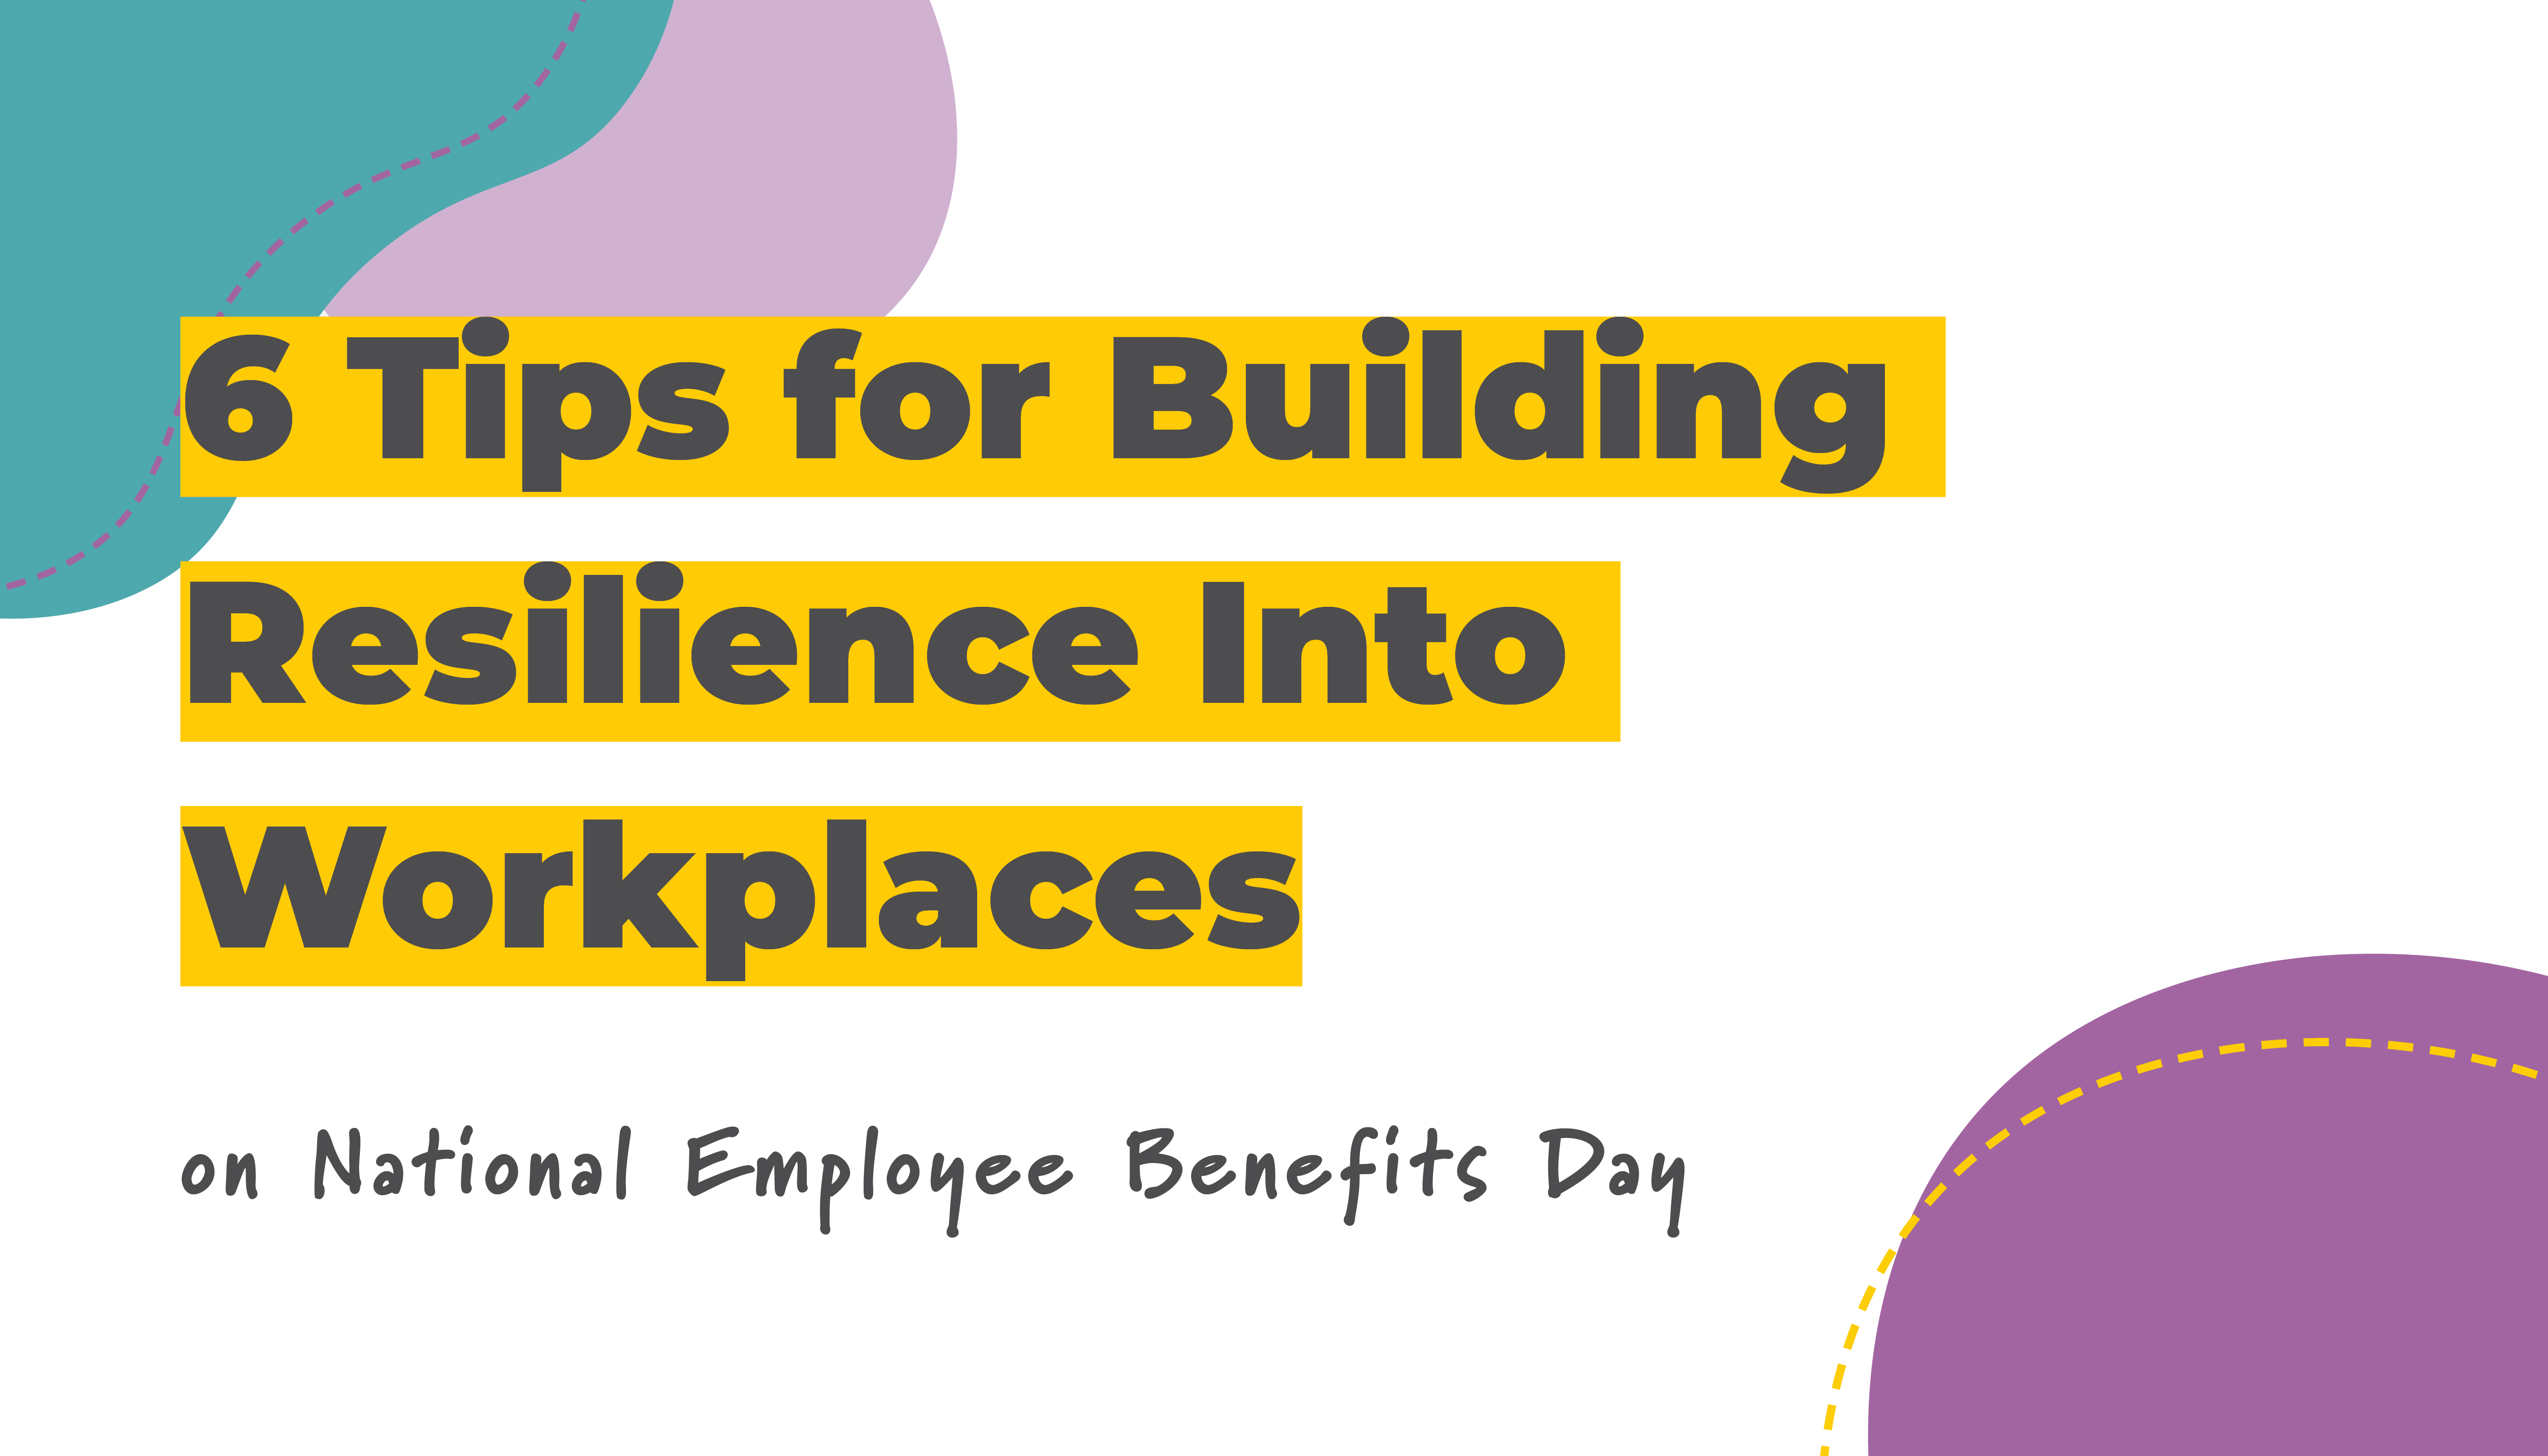 6 Tips for Building Resilience Into Workplaces | Benefits by Design